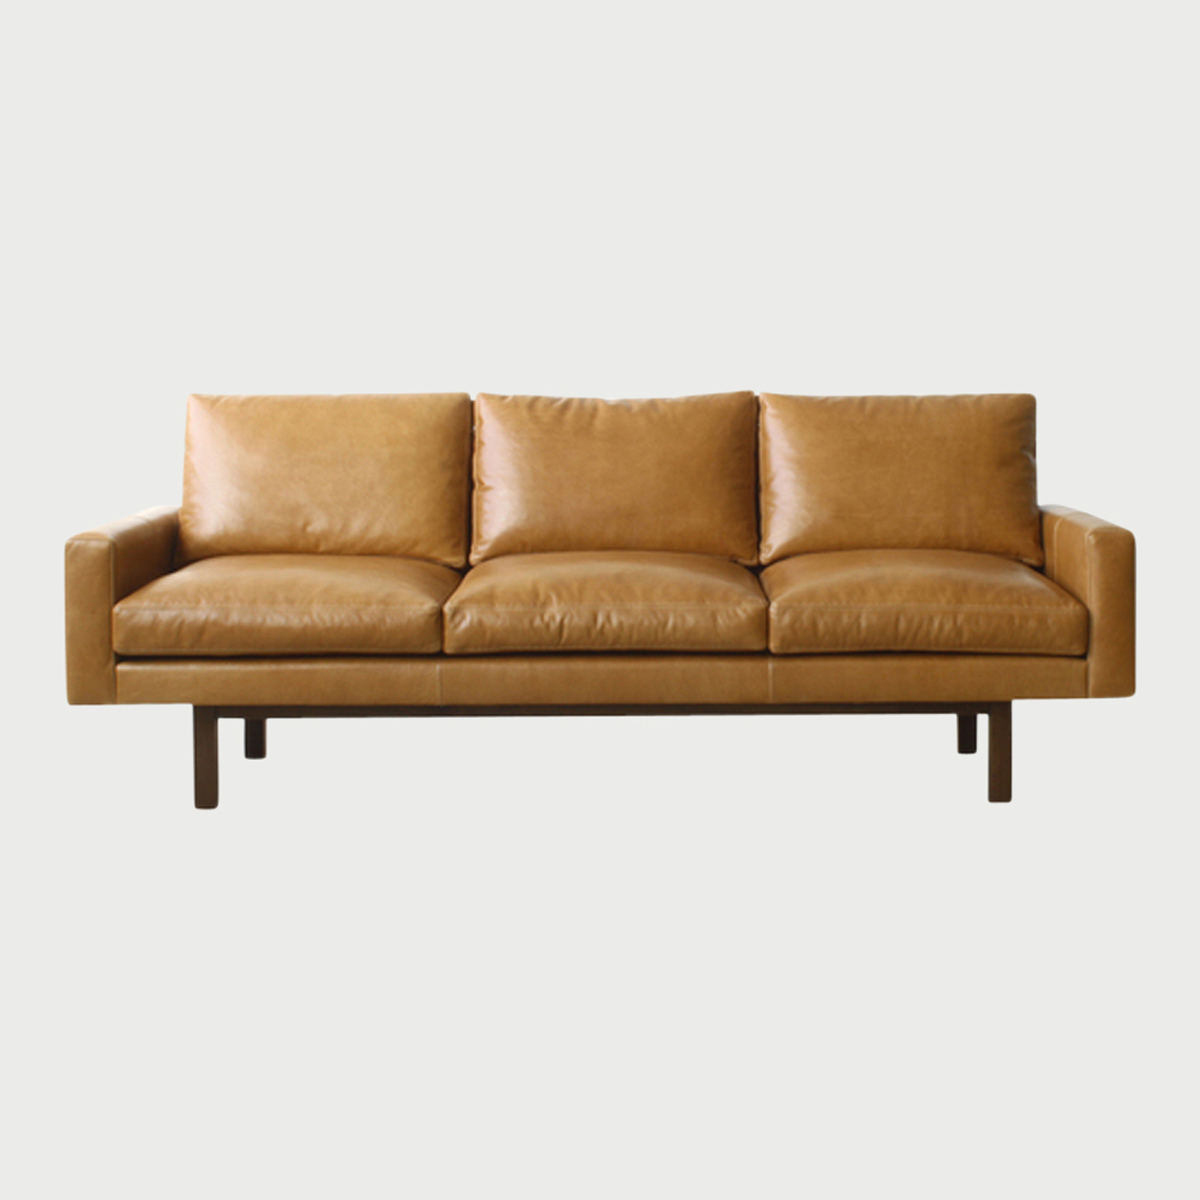 Michael felix standard sofa copy